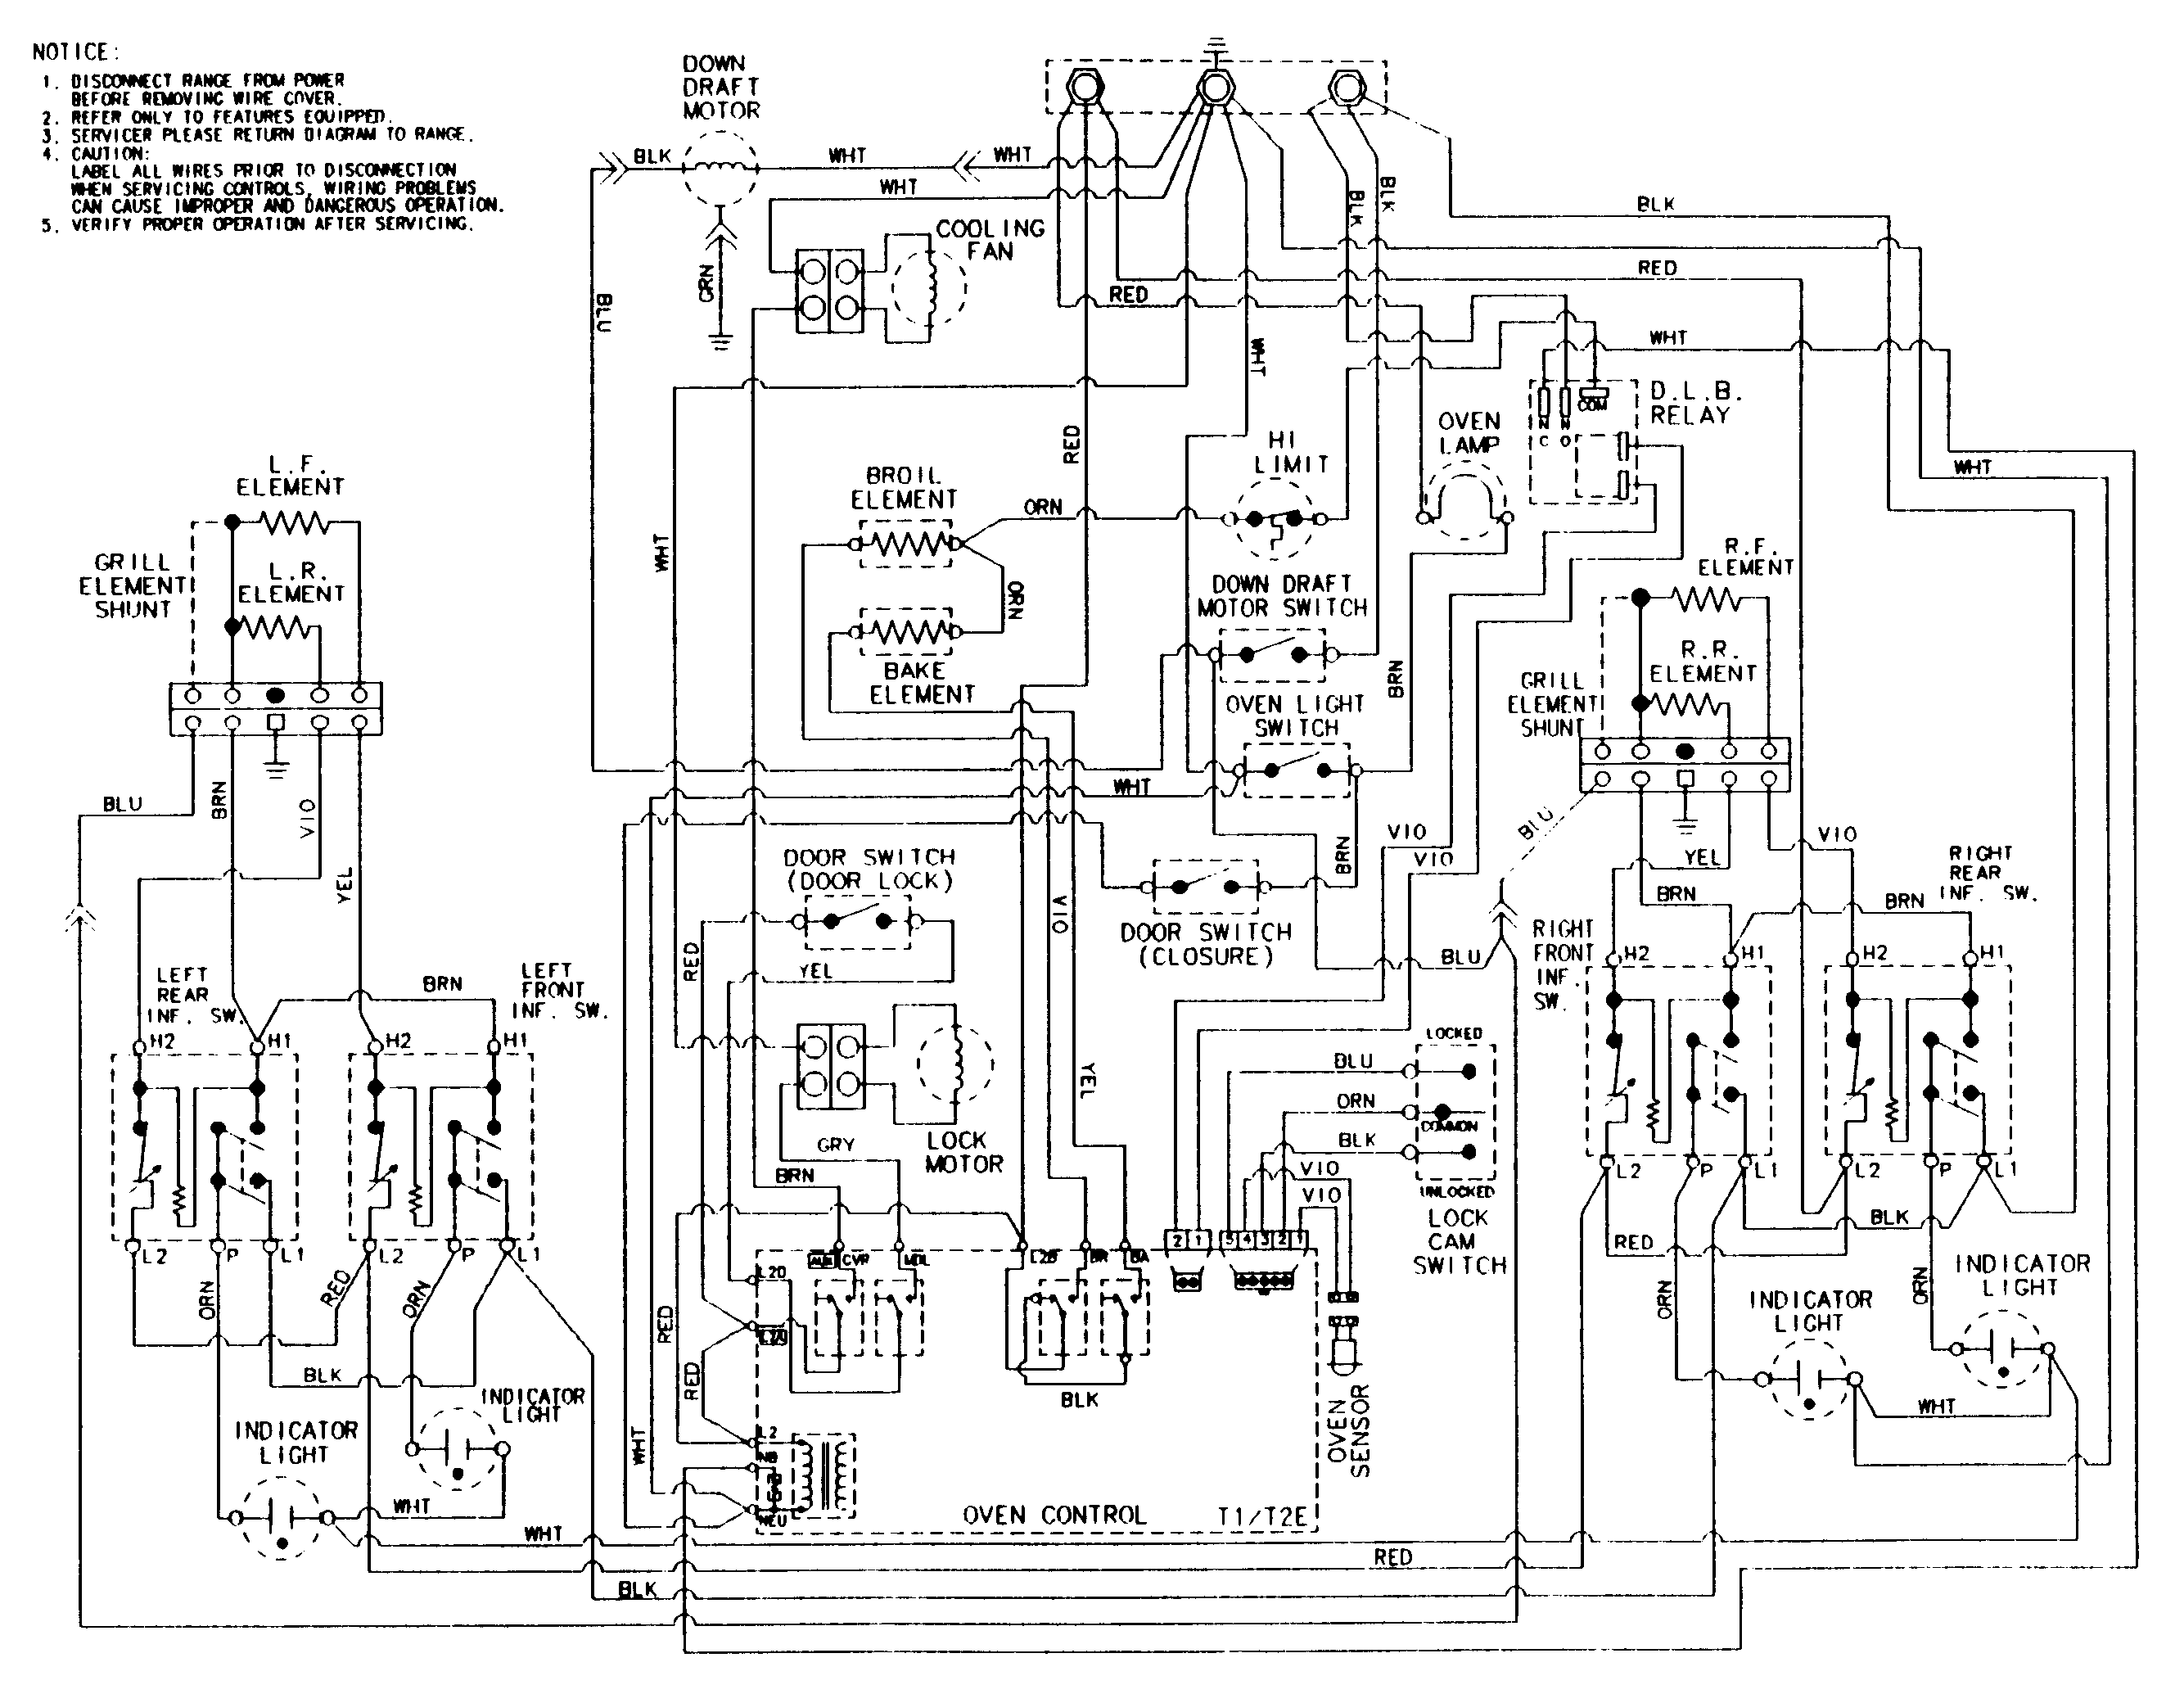 24 Wiring Diagram For Electric Stove House Wiring Electrical